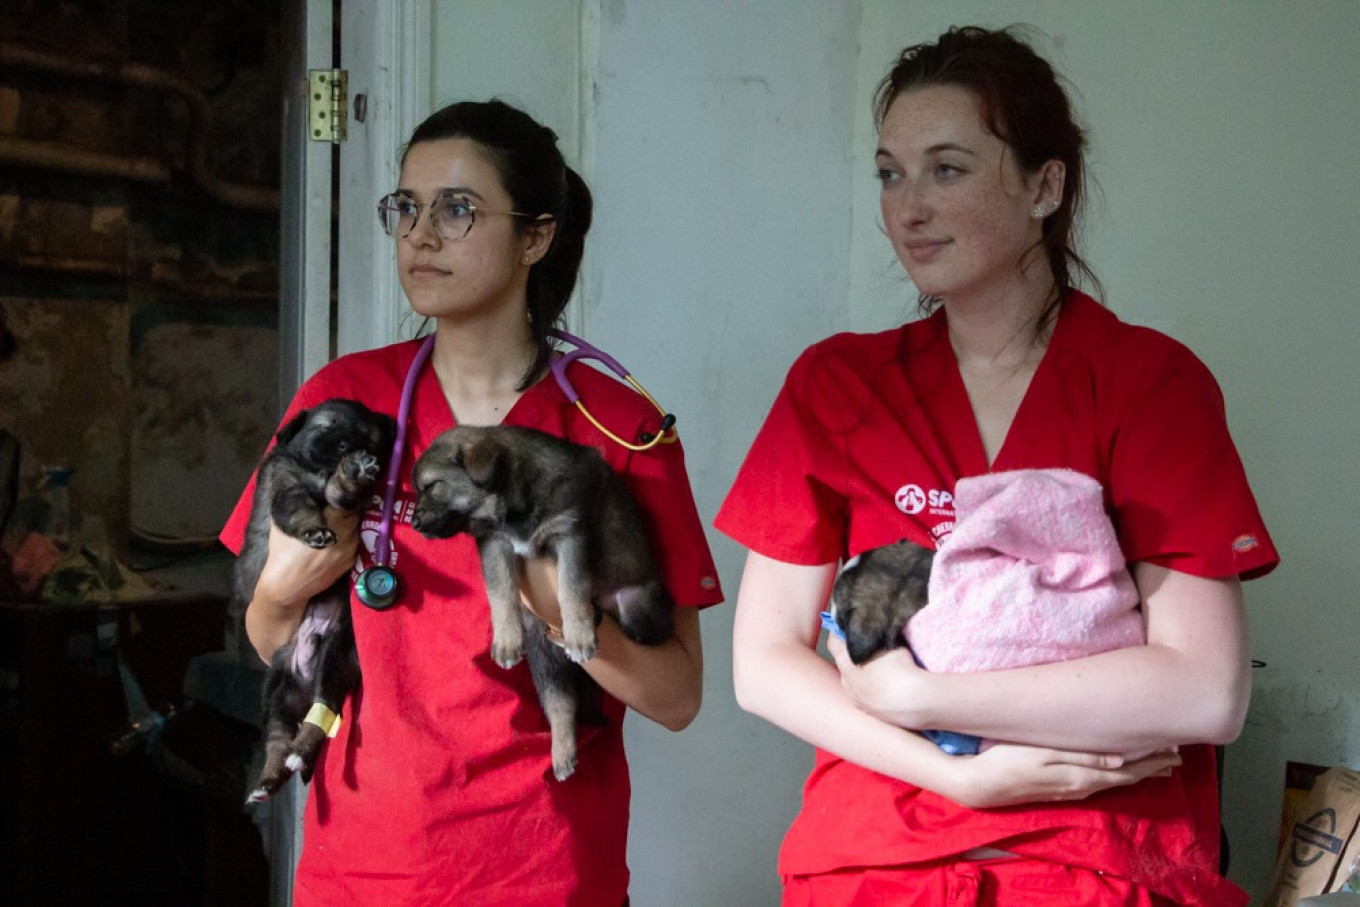 Volunteers hold puppies as they await medical treatment. SPCA International